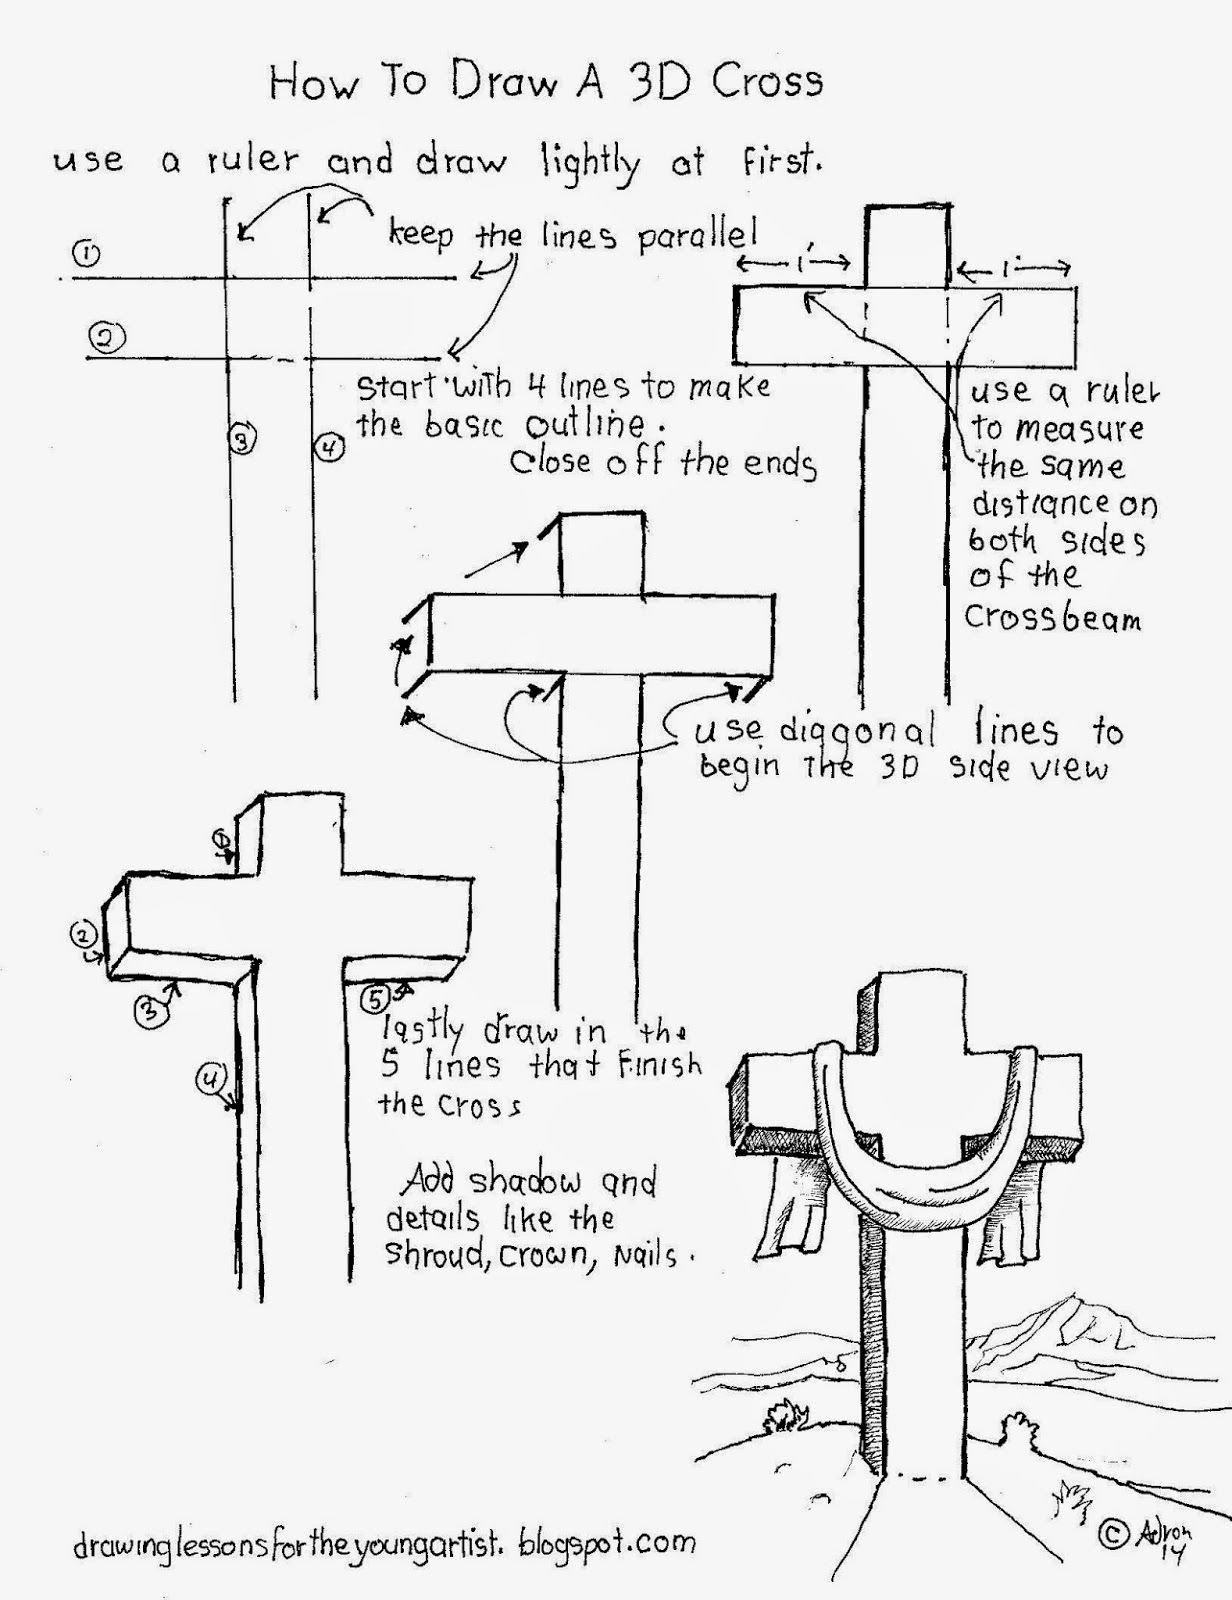 how to draw worksheets for the young artist how to draw a 3d cross - How To Draw 3d Diagrams